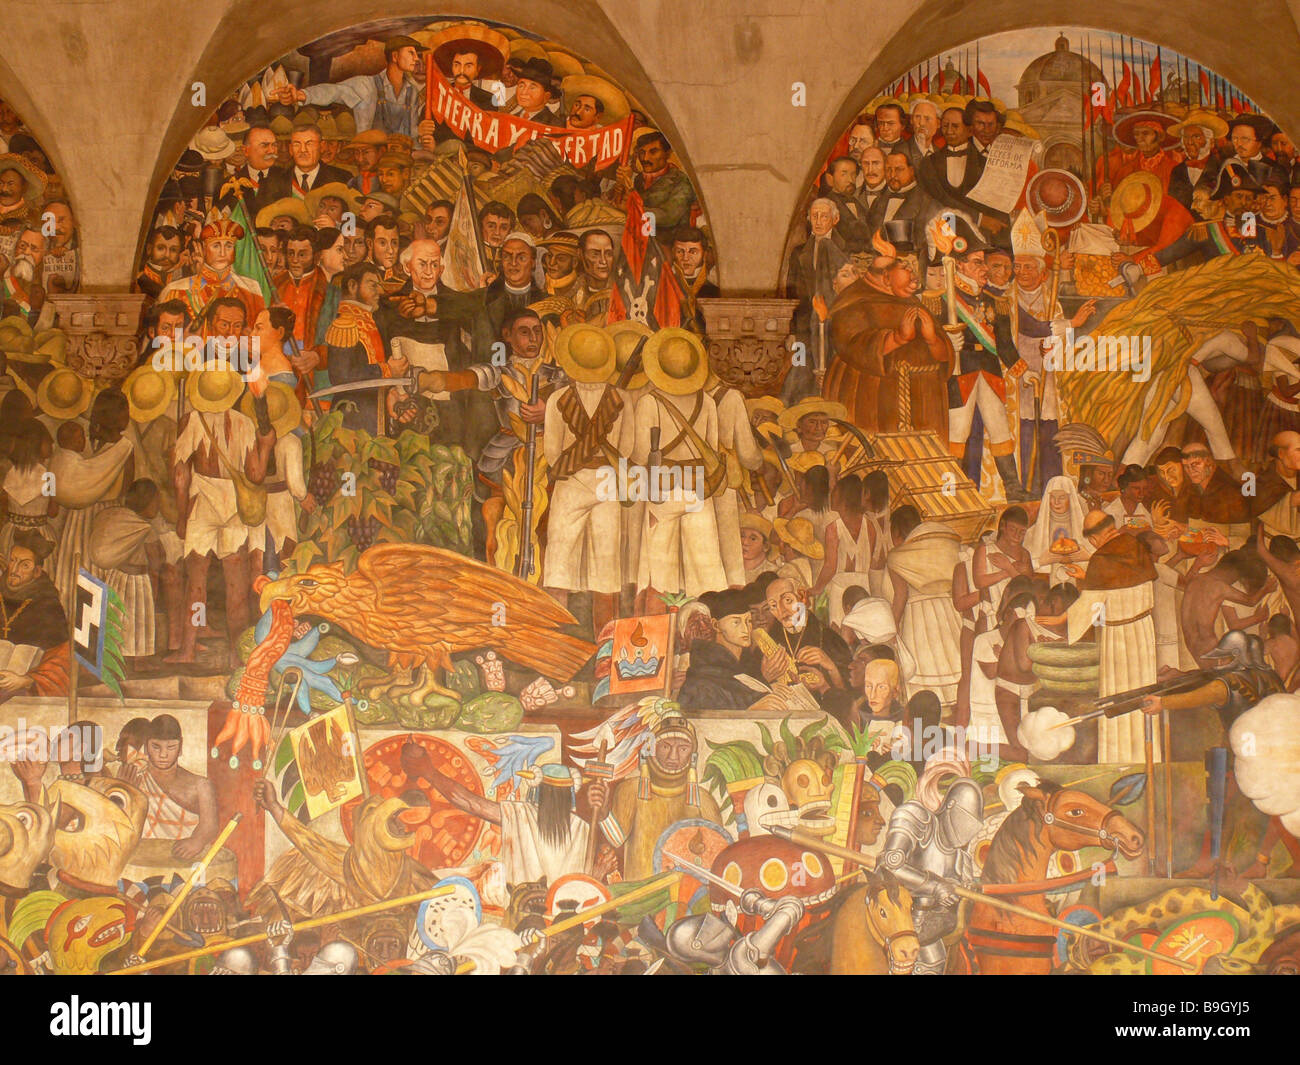 Mexico mexico city palacio nacional murals artist diego for Diego rivera mural paintings